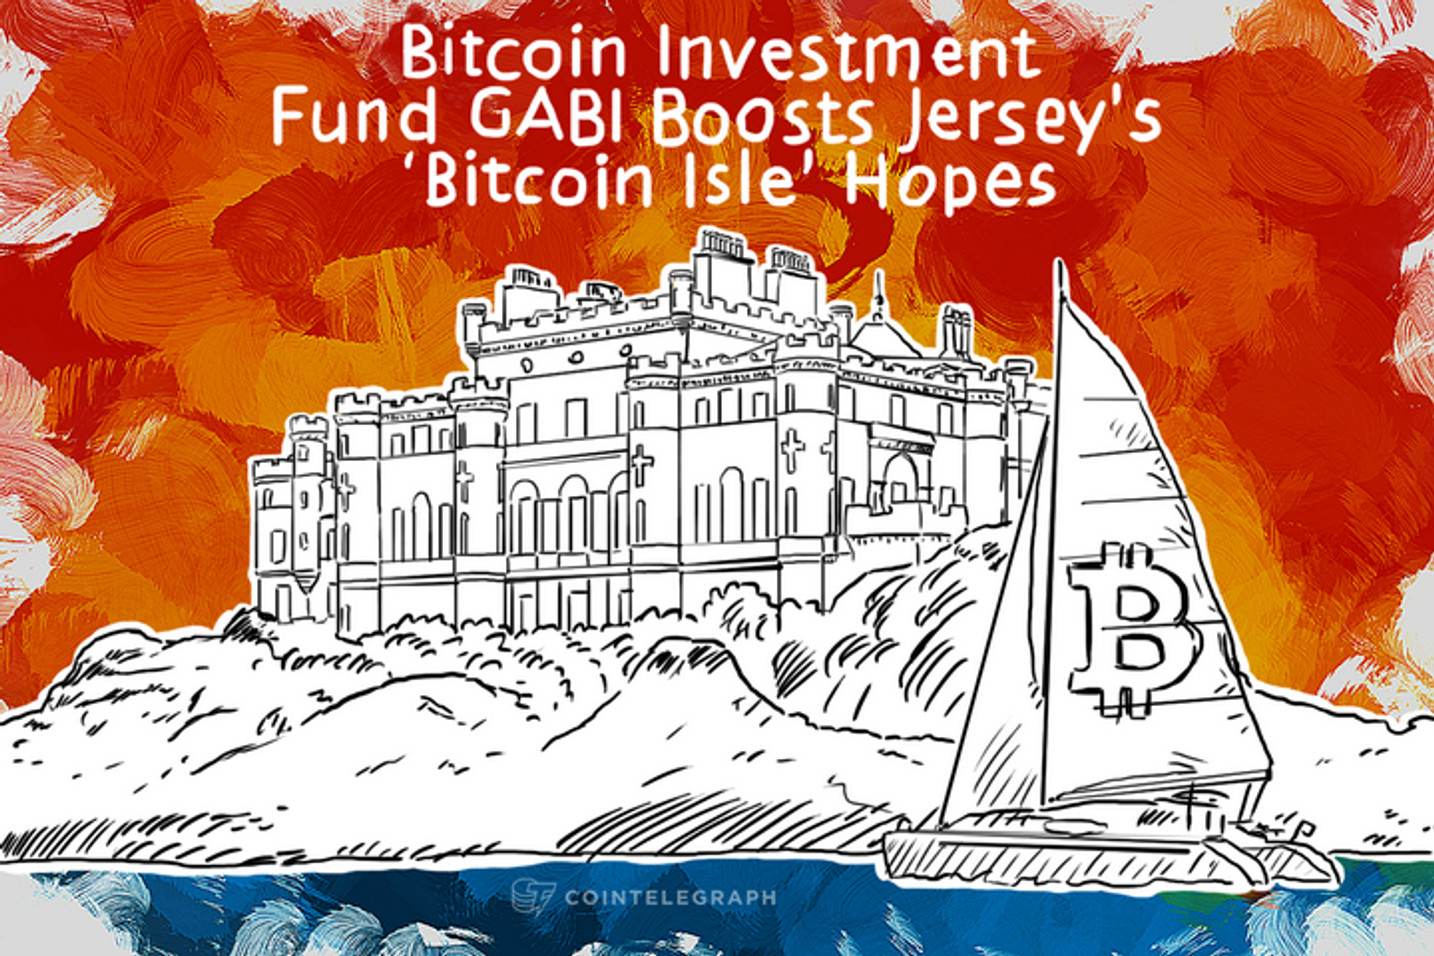 Bitcoin Investment Fund GABI Boosts Jersey's 'Bitcoin Isle' Hopes